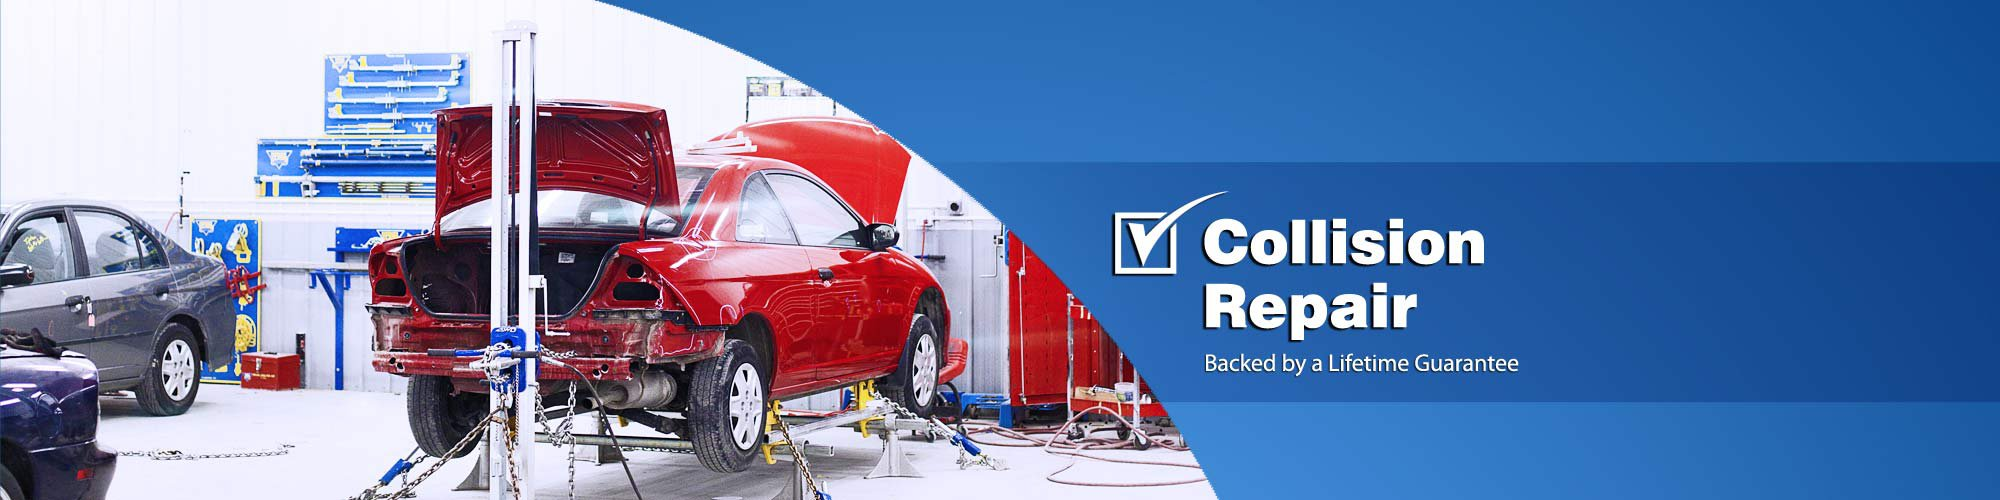 Collision Repair Auto Body Auto Glass Gerber Collision